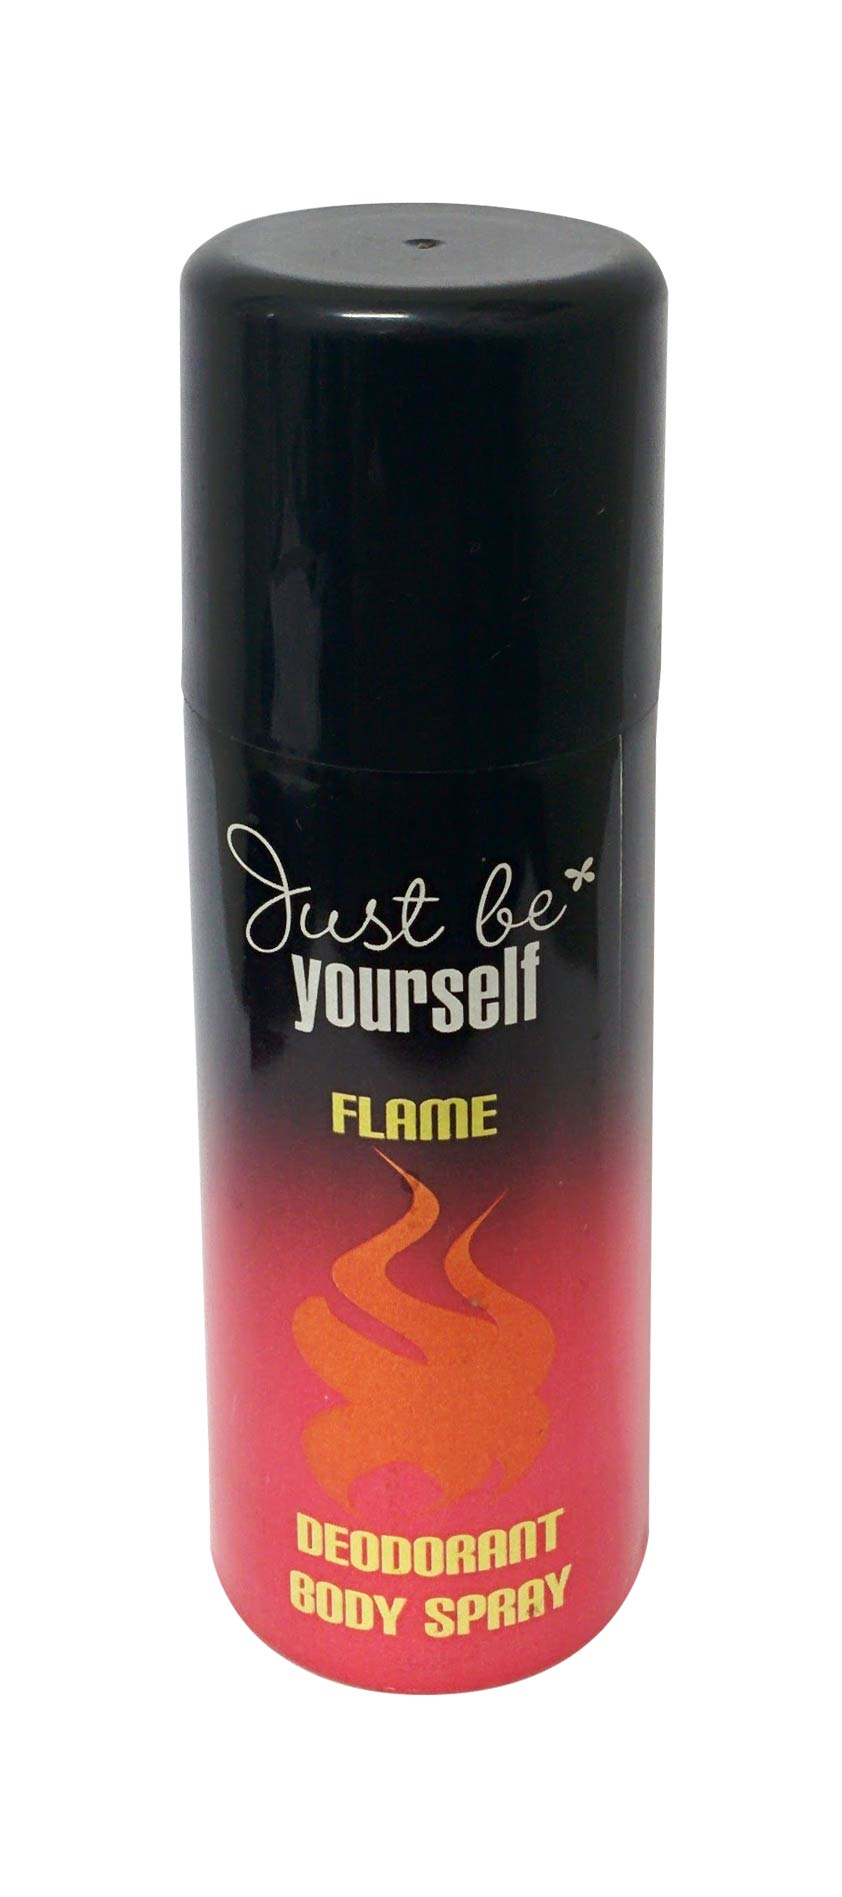 Justbeyourself_FlameDeoderant.jpg